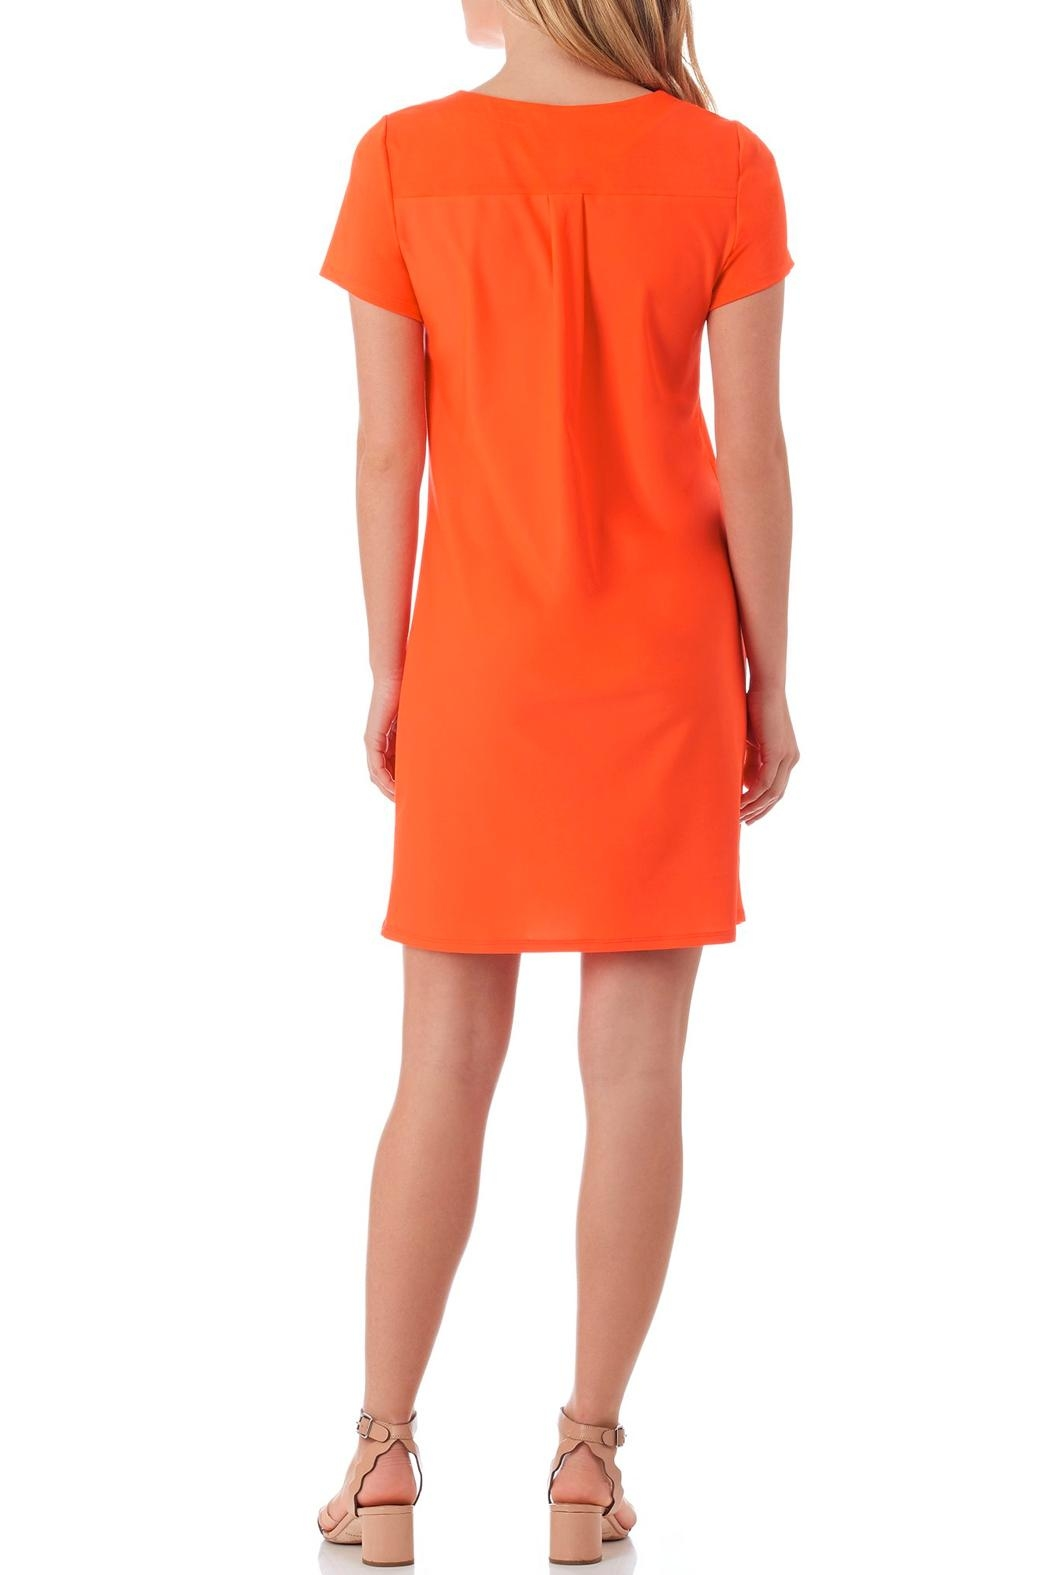 Jude Connally Ella T-Shirt Dress - Front Full Image